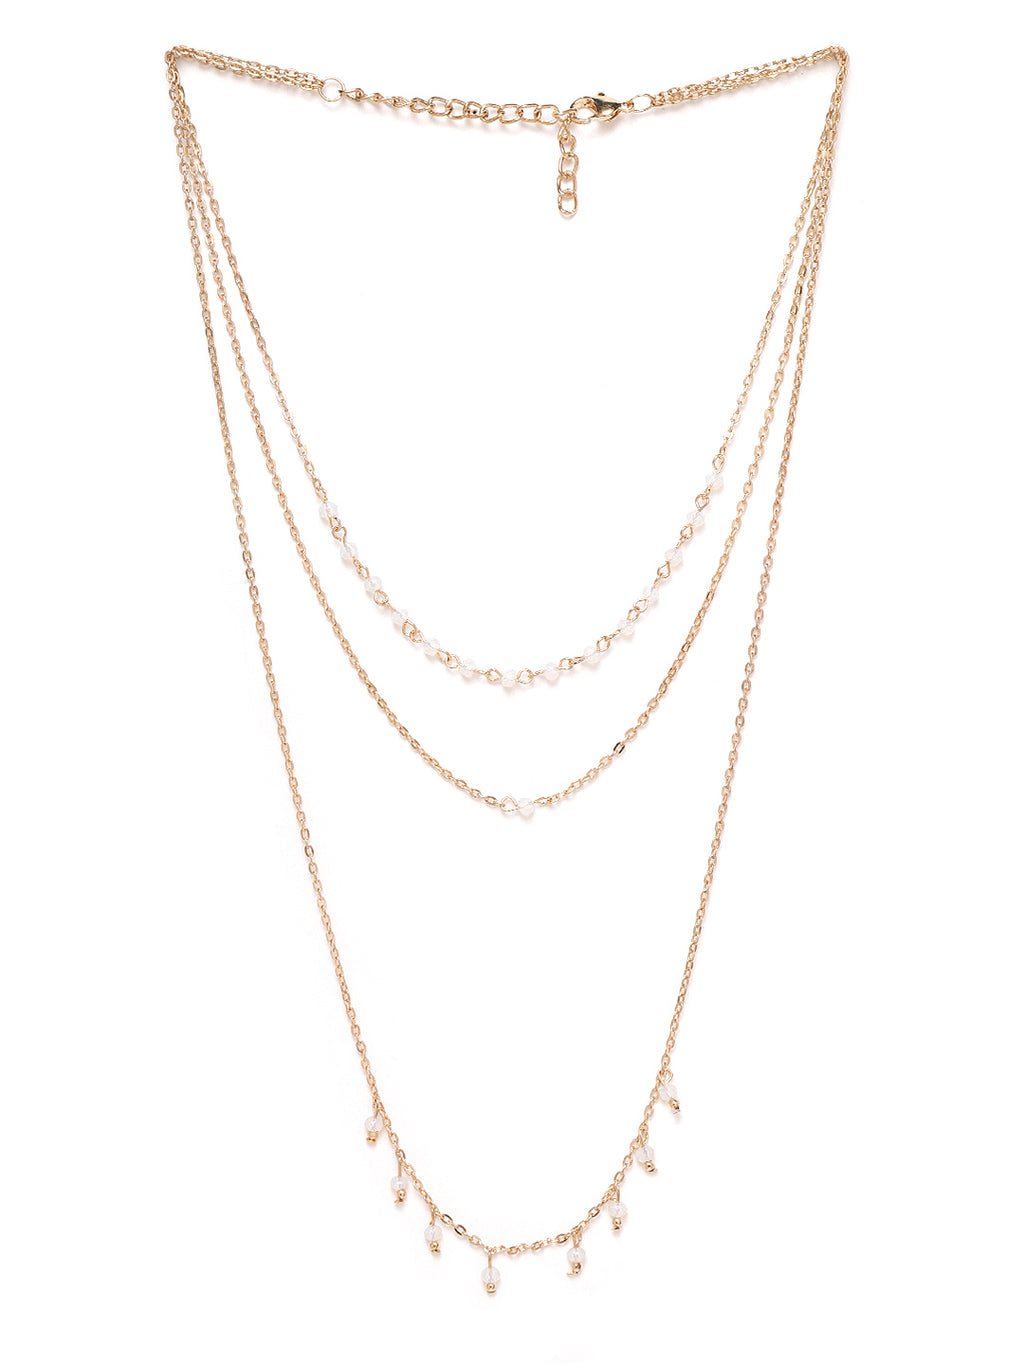 Blueberry gold plated chain layered necklace